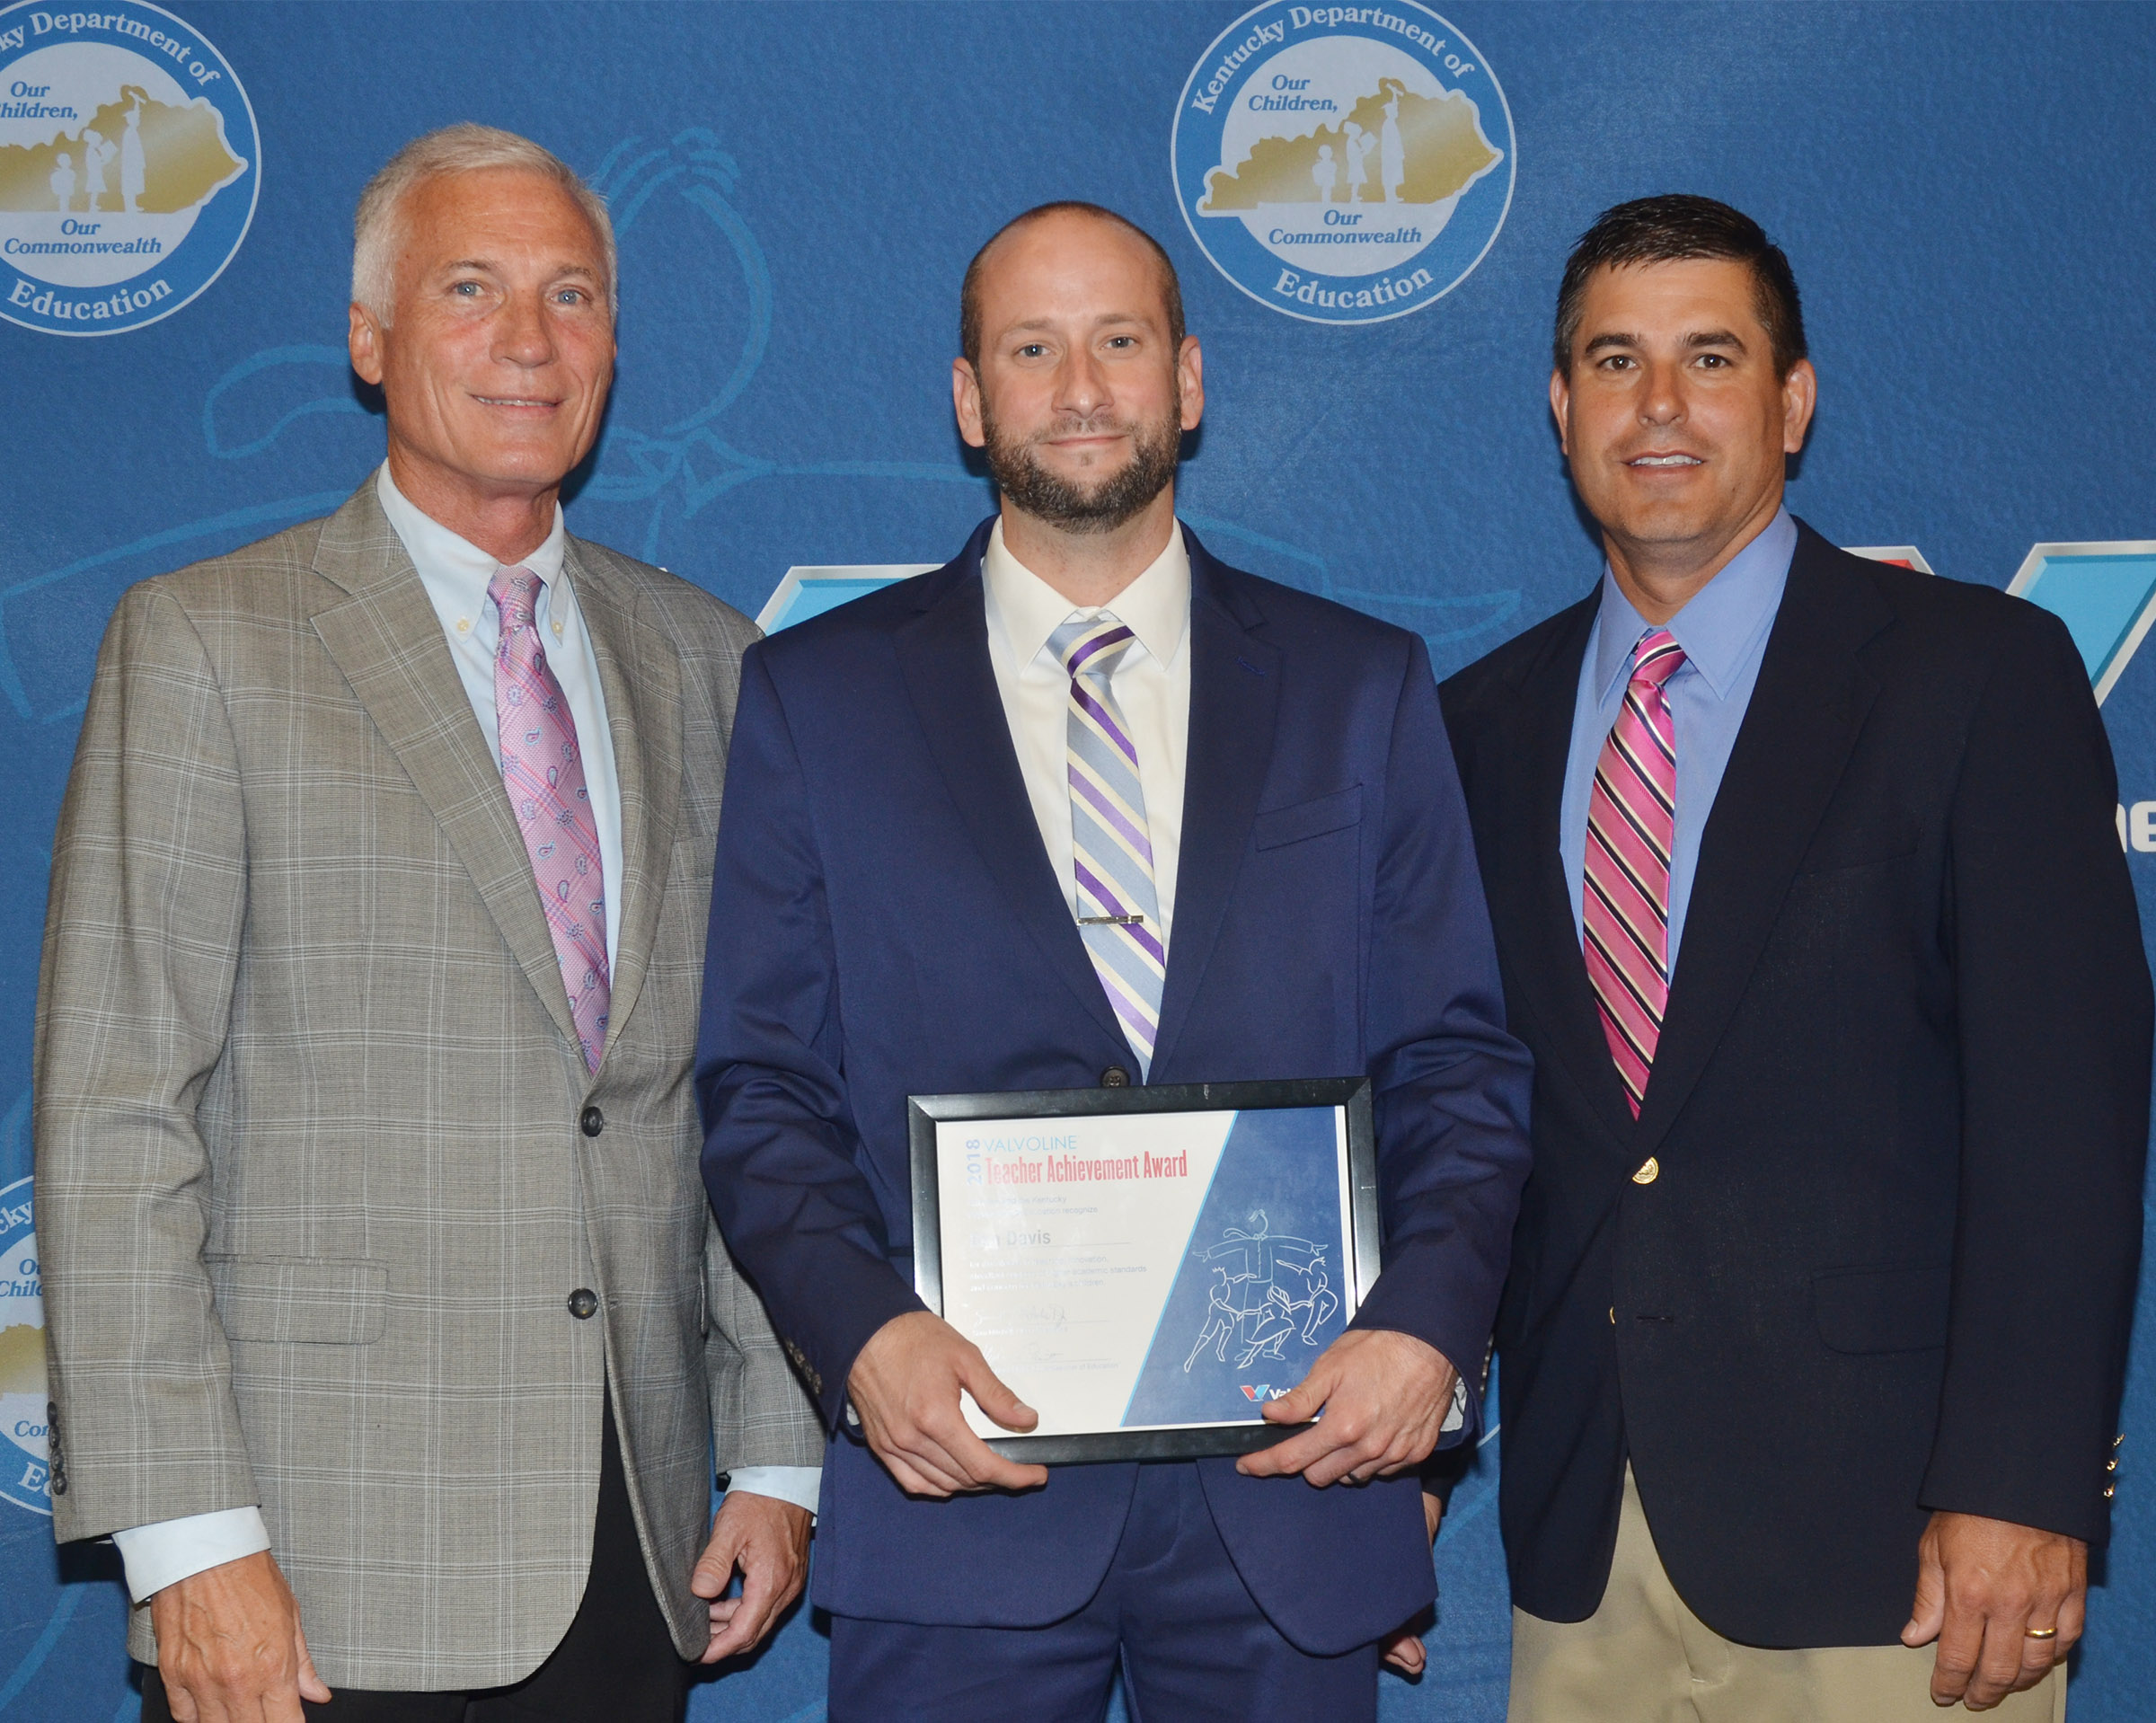 CHS teacher Ben Davis receives his Teacher Achievement Award and is pictured with Campbellsville Independent Schools Superintendent Mike Deaton, at left, and CHS Principal Kirby Smith.